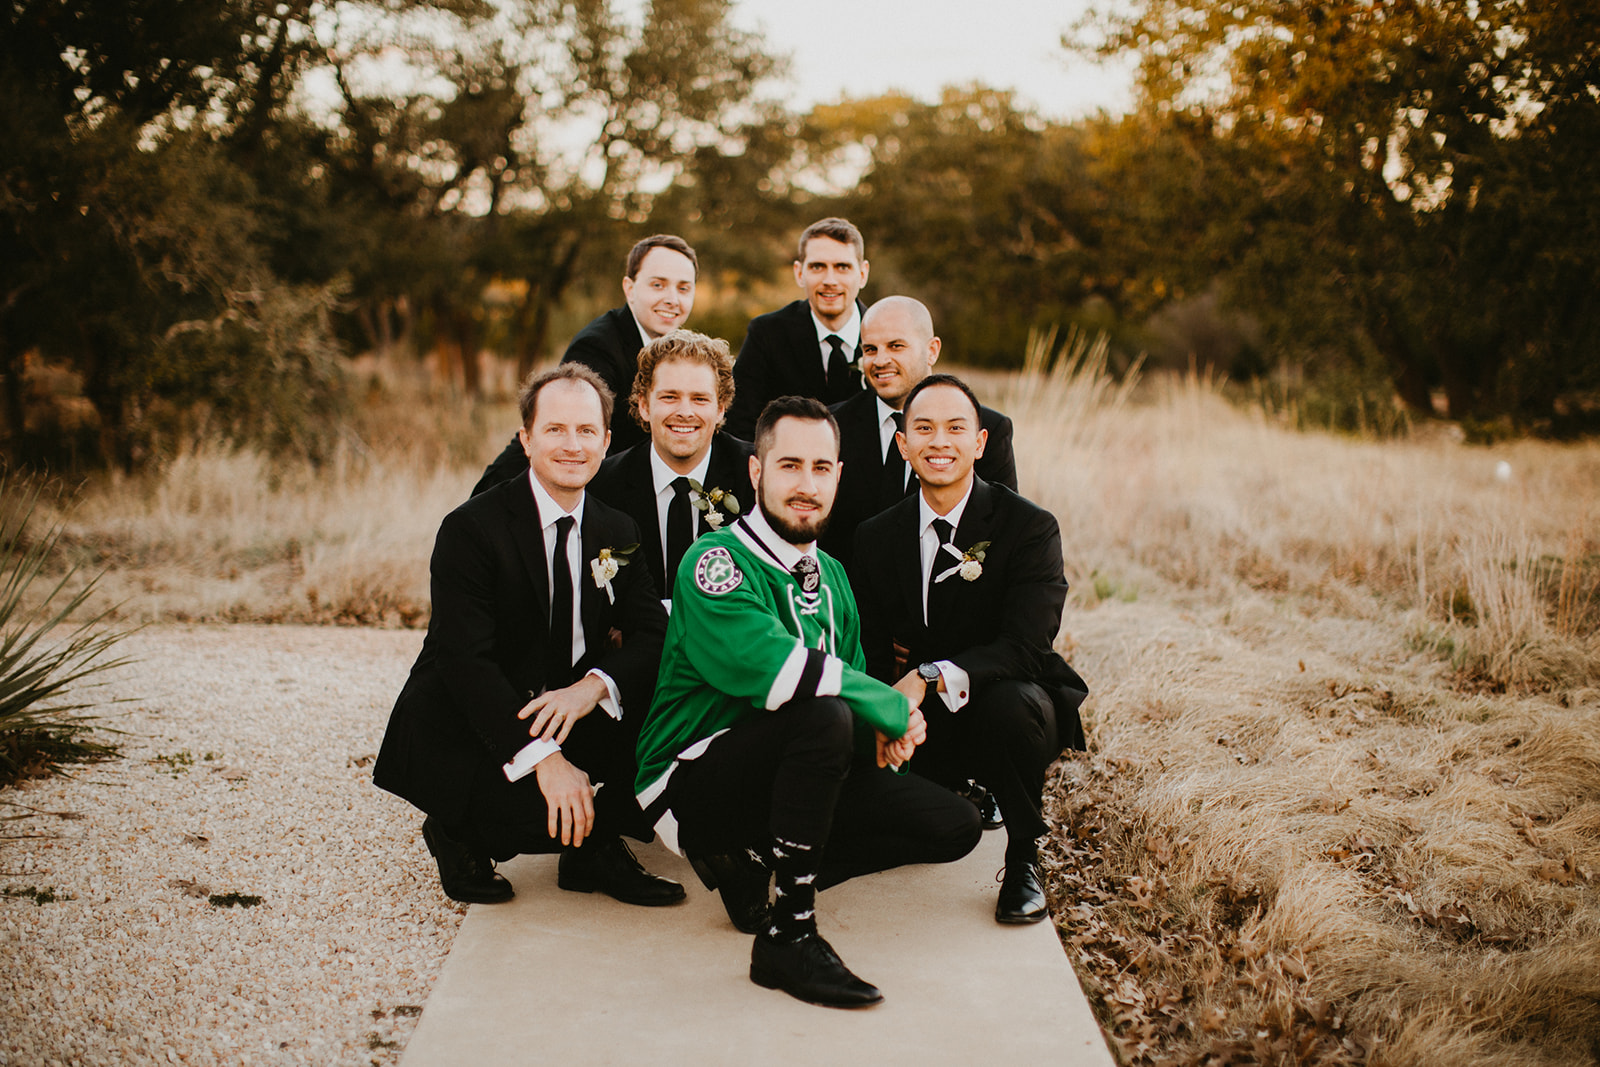 Groom Attire Suit + Floral Tie + Boutonnière with hops + craft brew beer + black + austin wedding venue prospect house + sports fan + jersey + austin wedding planner epoch co